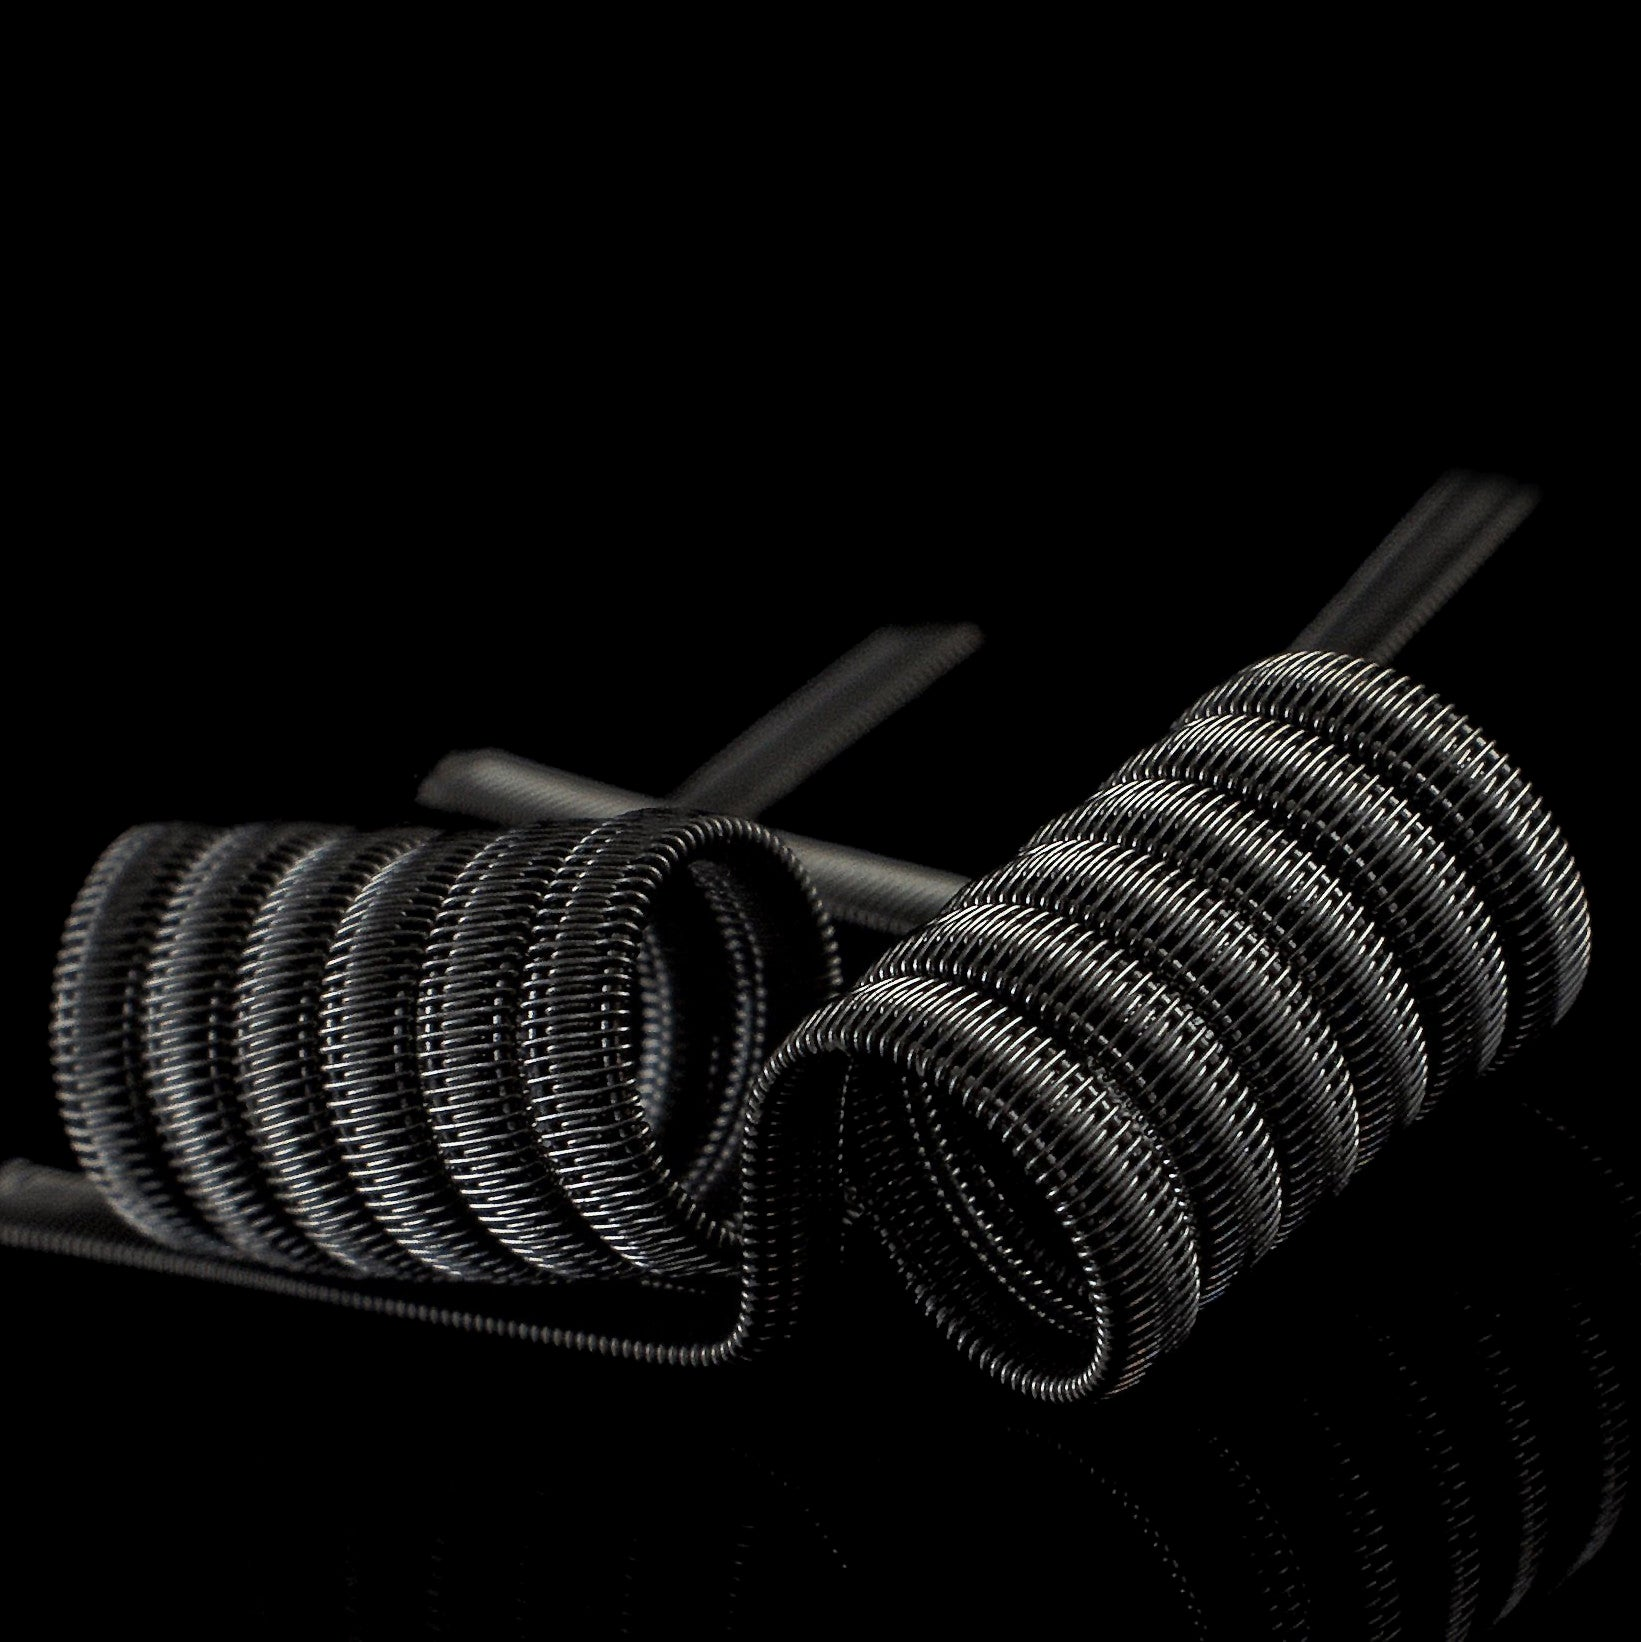 Staple staggered fused clapton (Staplestaggerton) - OHMLAND COILS